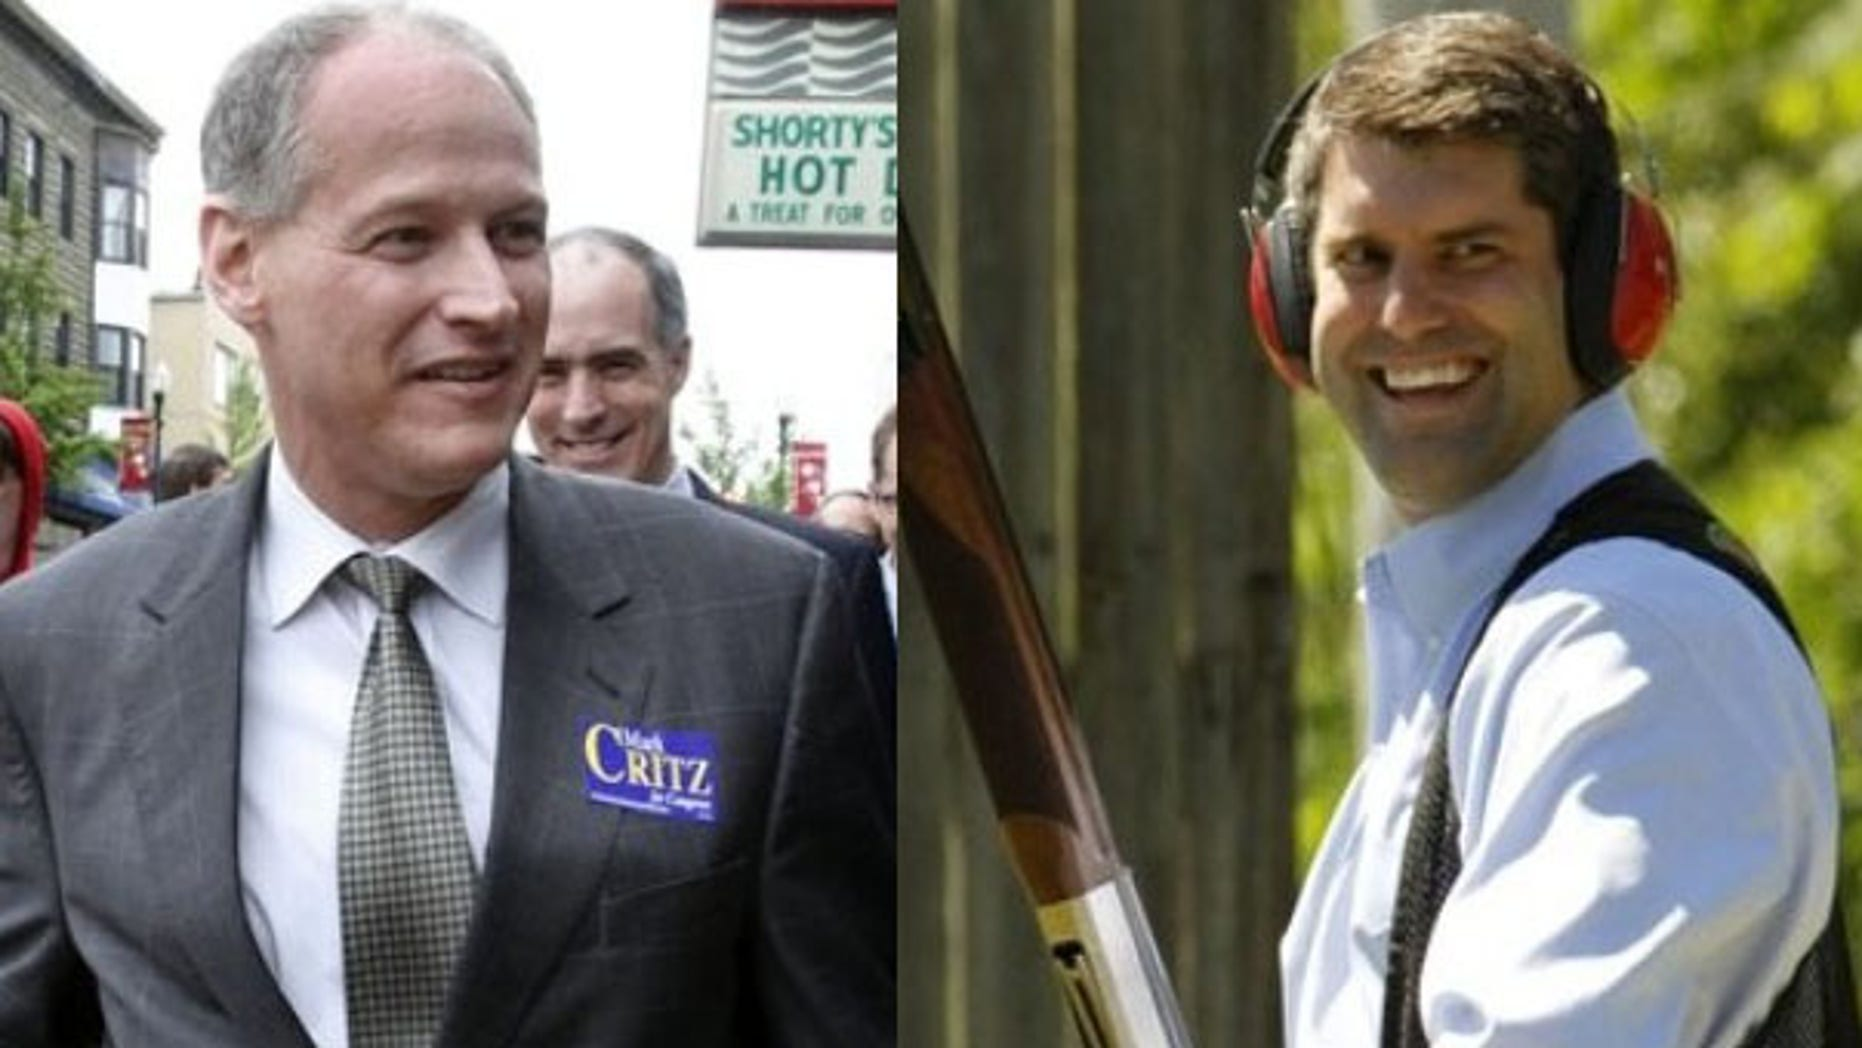 Democrat Mark Critz, left, and Republican Tim Burns are vying for the Pennsylvania congressional seat left vacant by the death of Rep. John Murtha (AP). The primary is Tuesday.